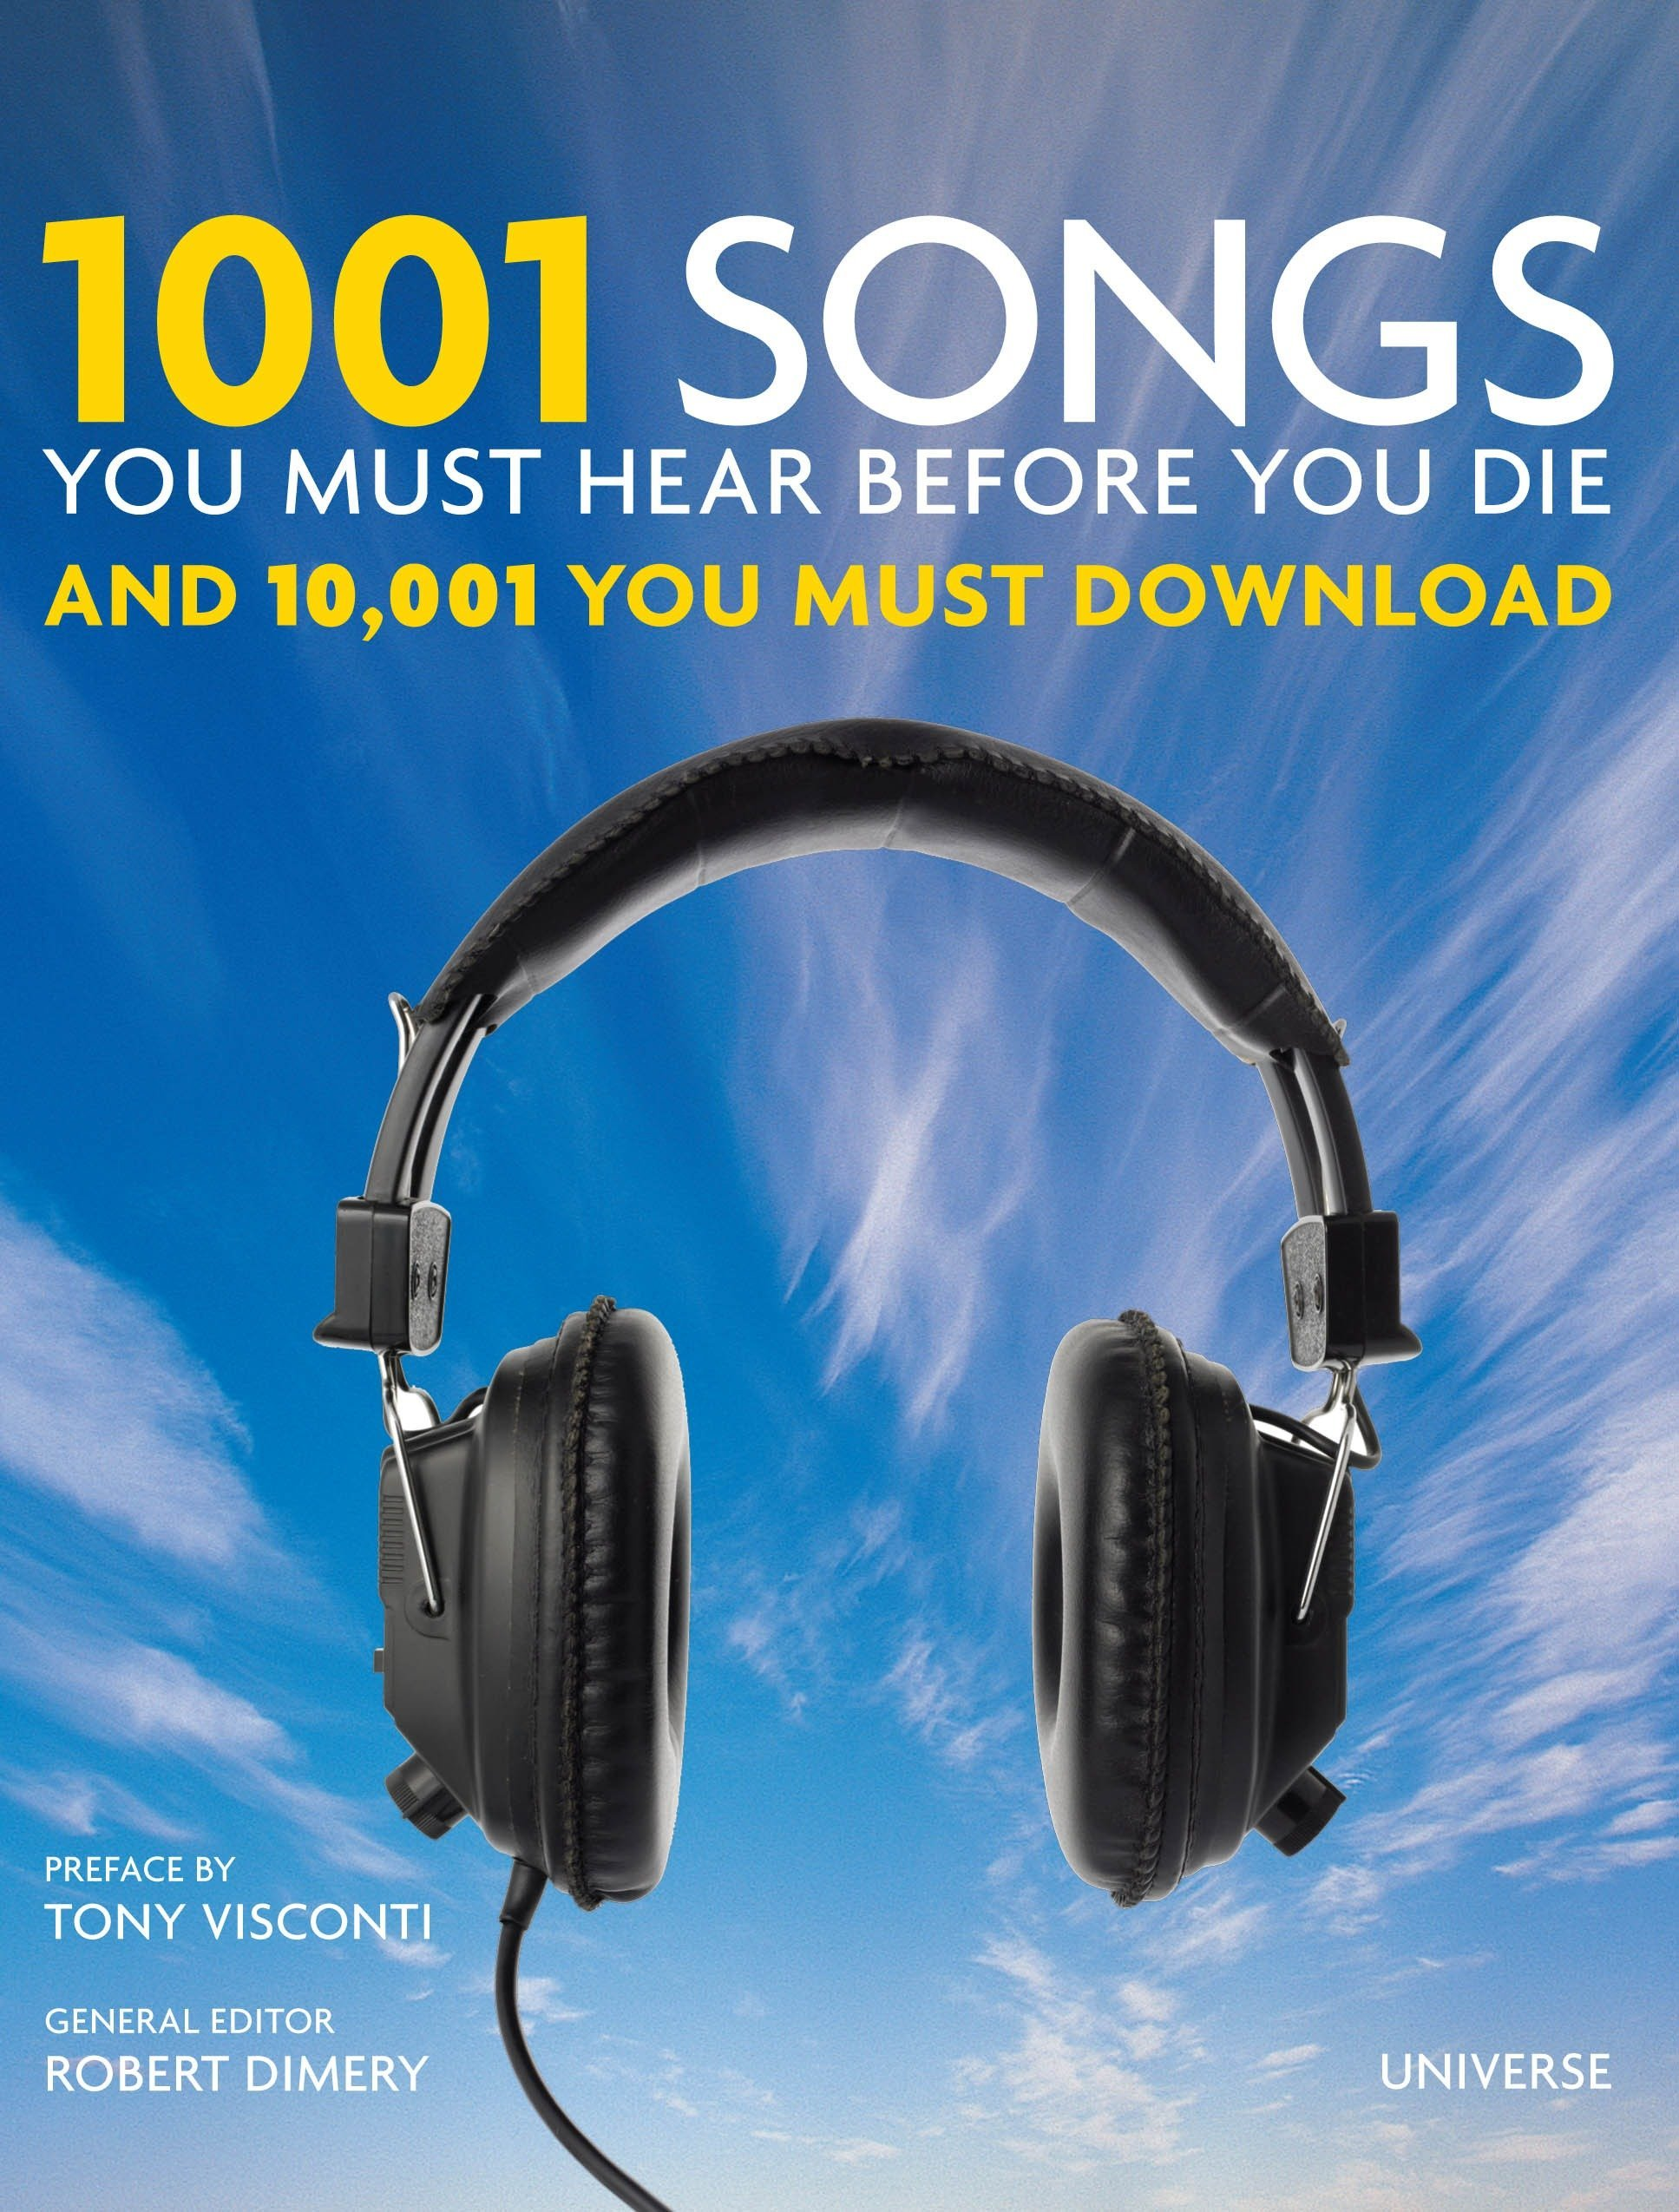 1001 Songs You Must Hear Before You Die: And 10, 001 You Must Download:  Robert Dimery, Tony Visconti: 9780789320896: Amazon.com: Books